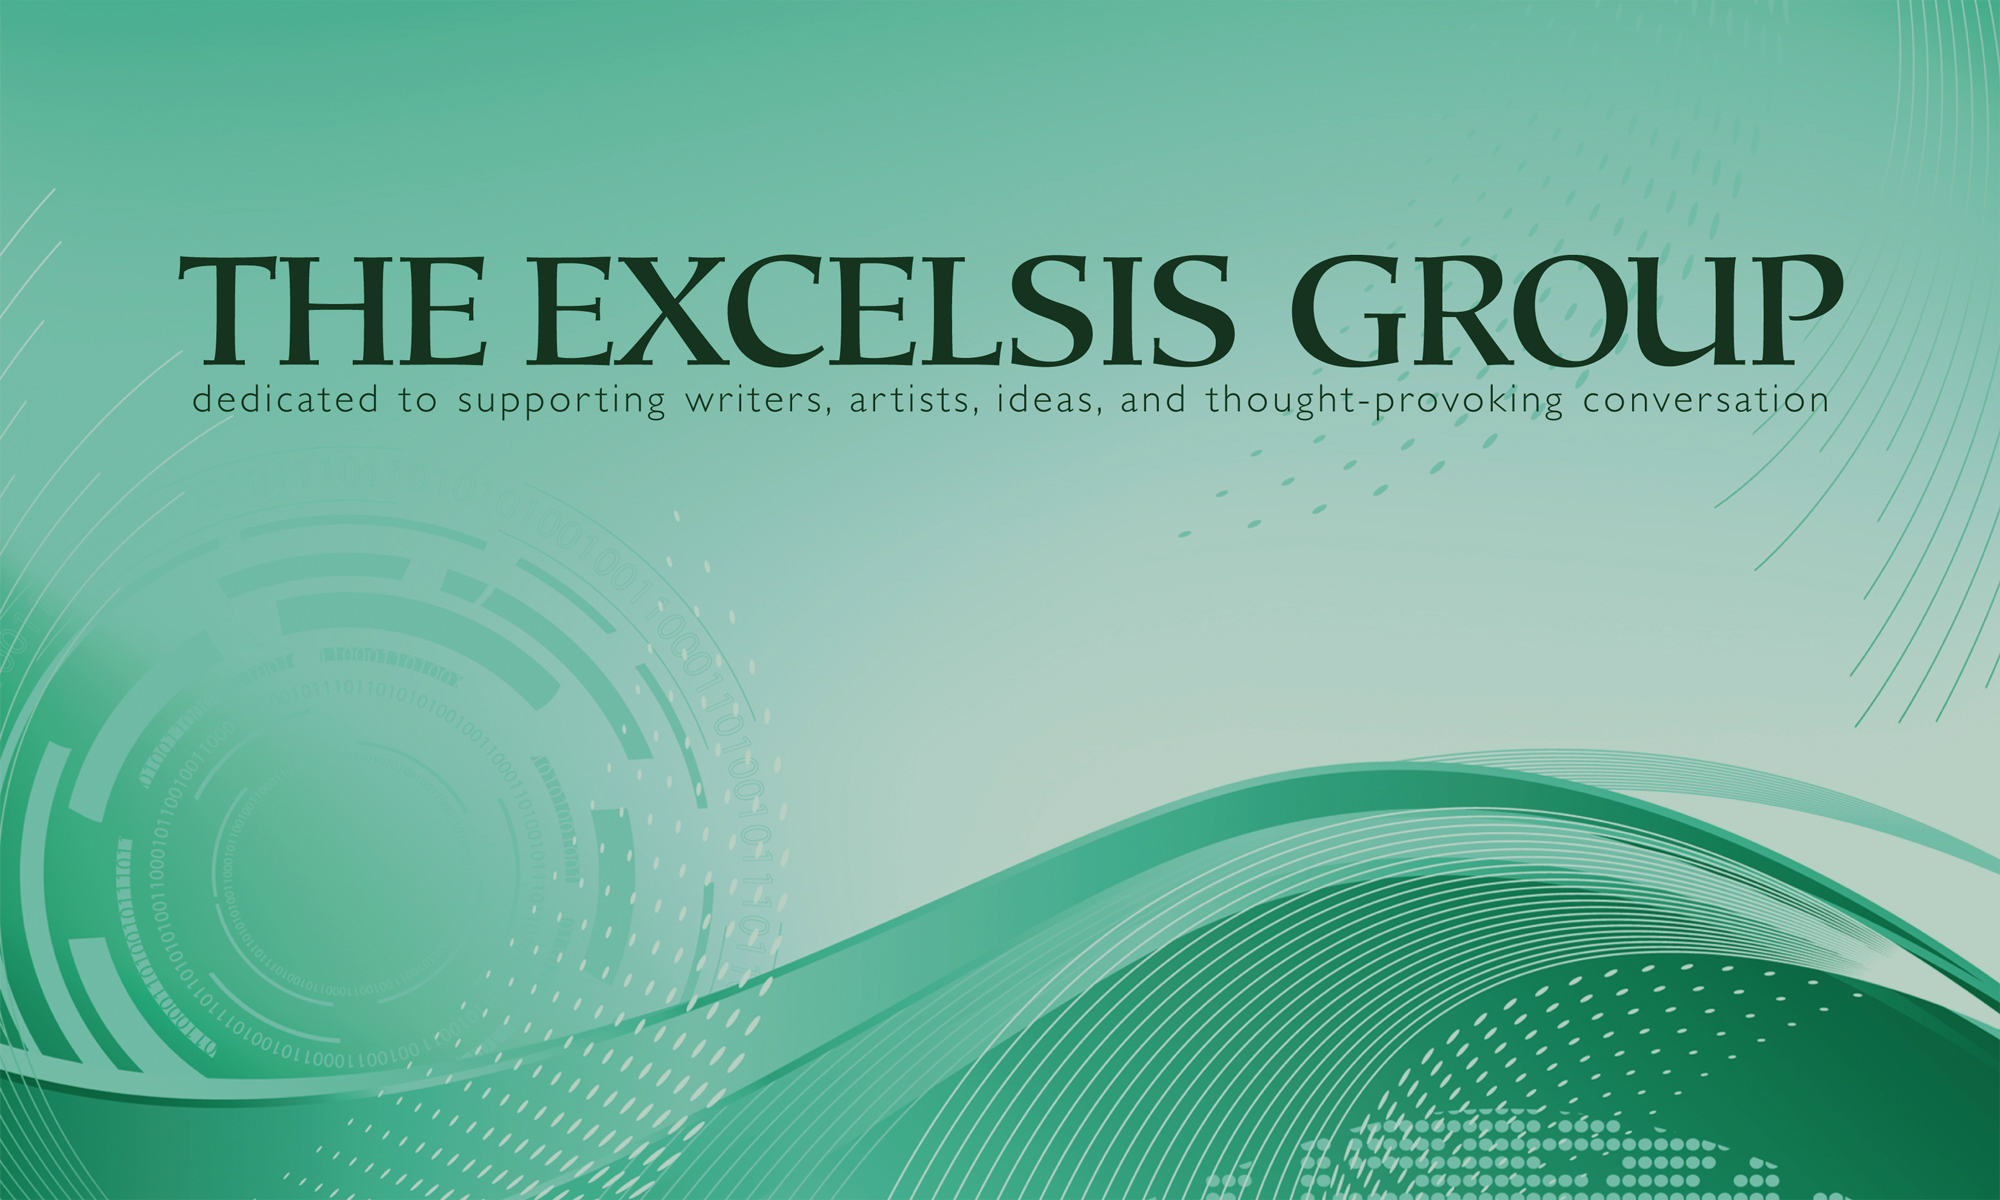 The Excelsis Group